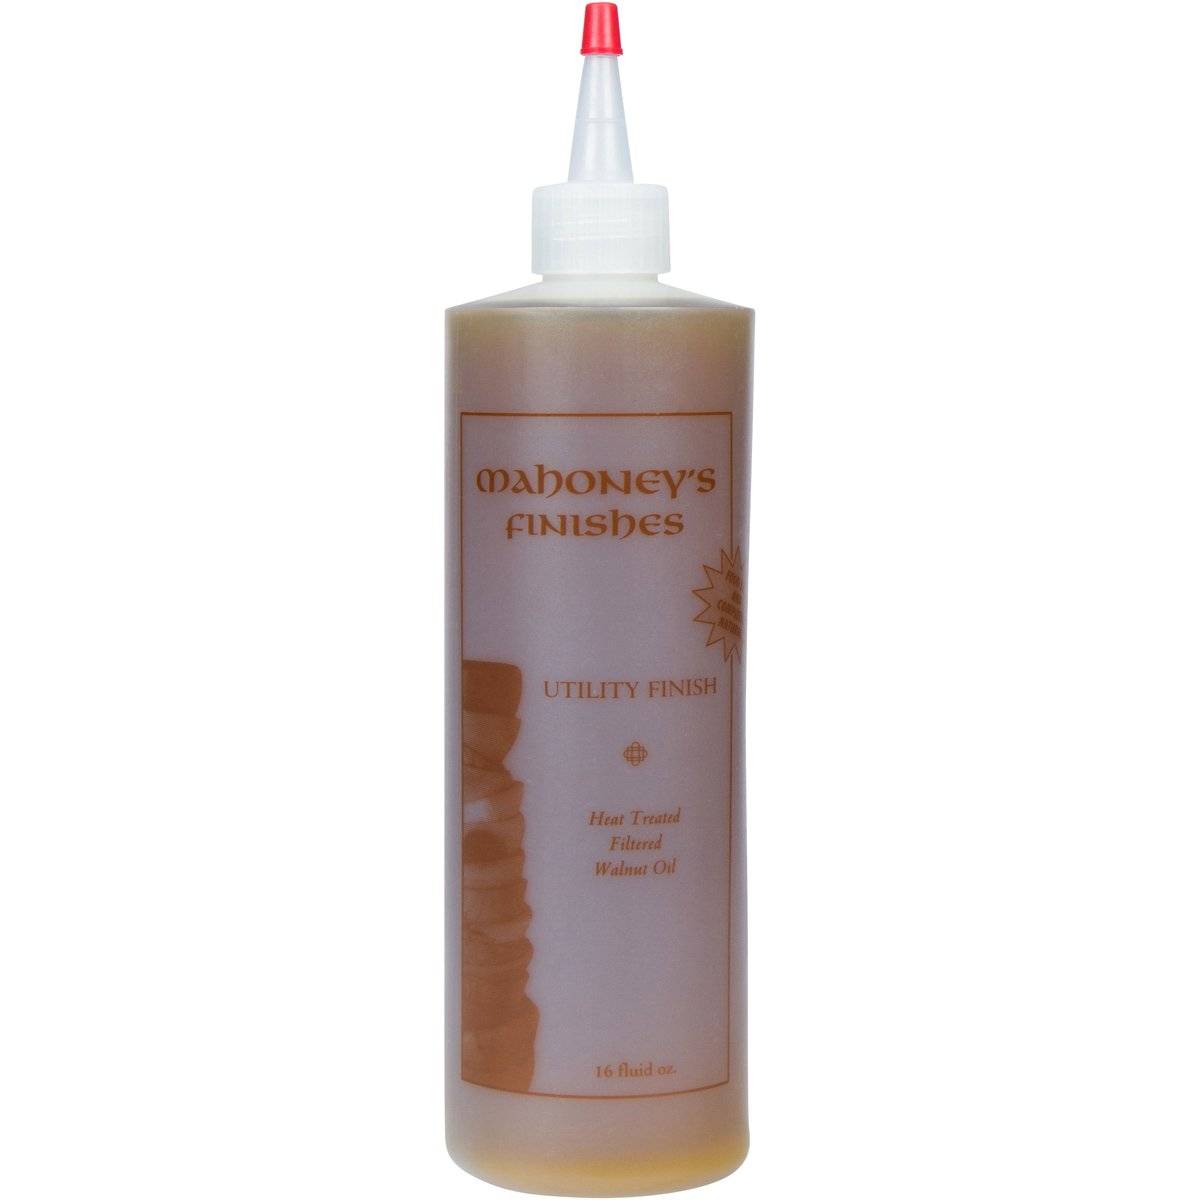 Mahoney's Finishes Walnut Oil and Wax Combo: Food Safe Wood Finish For Salad Bowls, Cutting Boards, Furniture a Fast Drying Utility Oil Wood Protectant by Bowl Maker (Image #2)